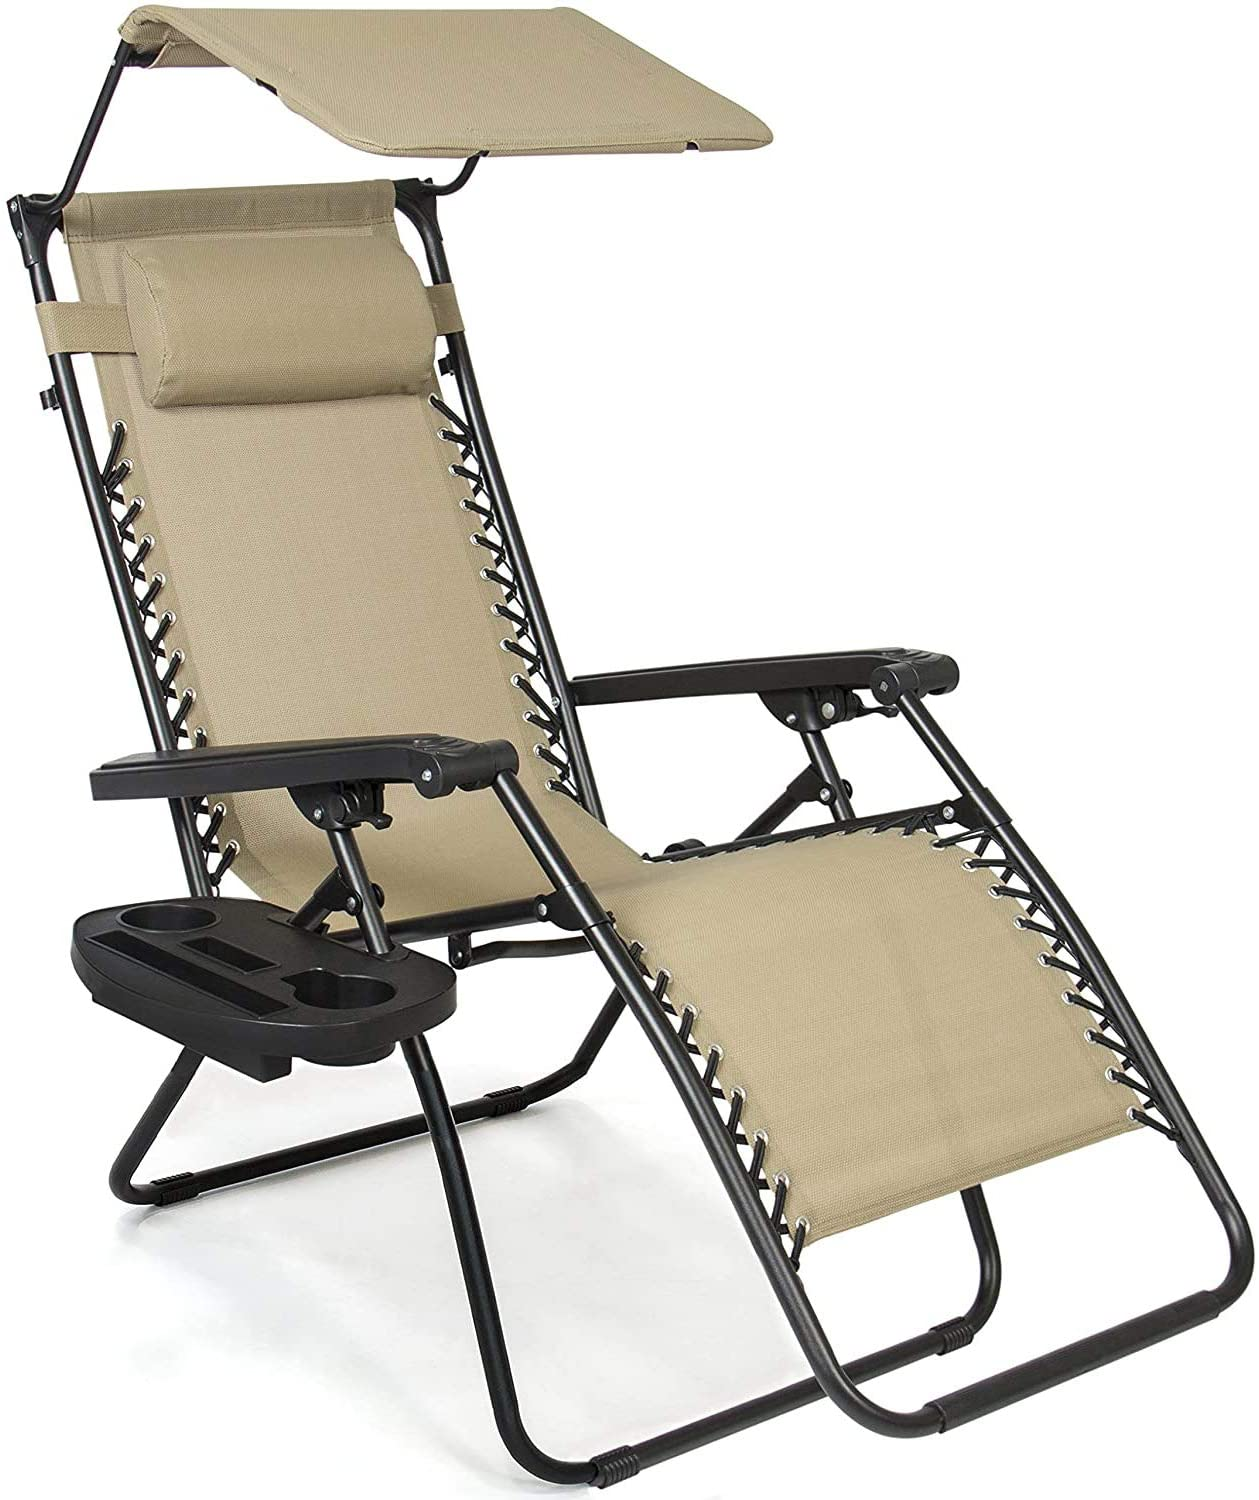 XKRSBS Folding Zero Gravity Recliner Lounge Chair w/Canopy Shade and Cup Holder Tray